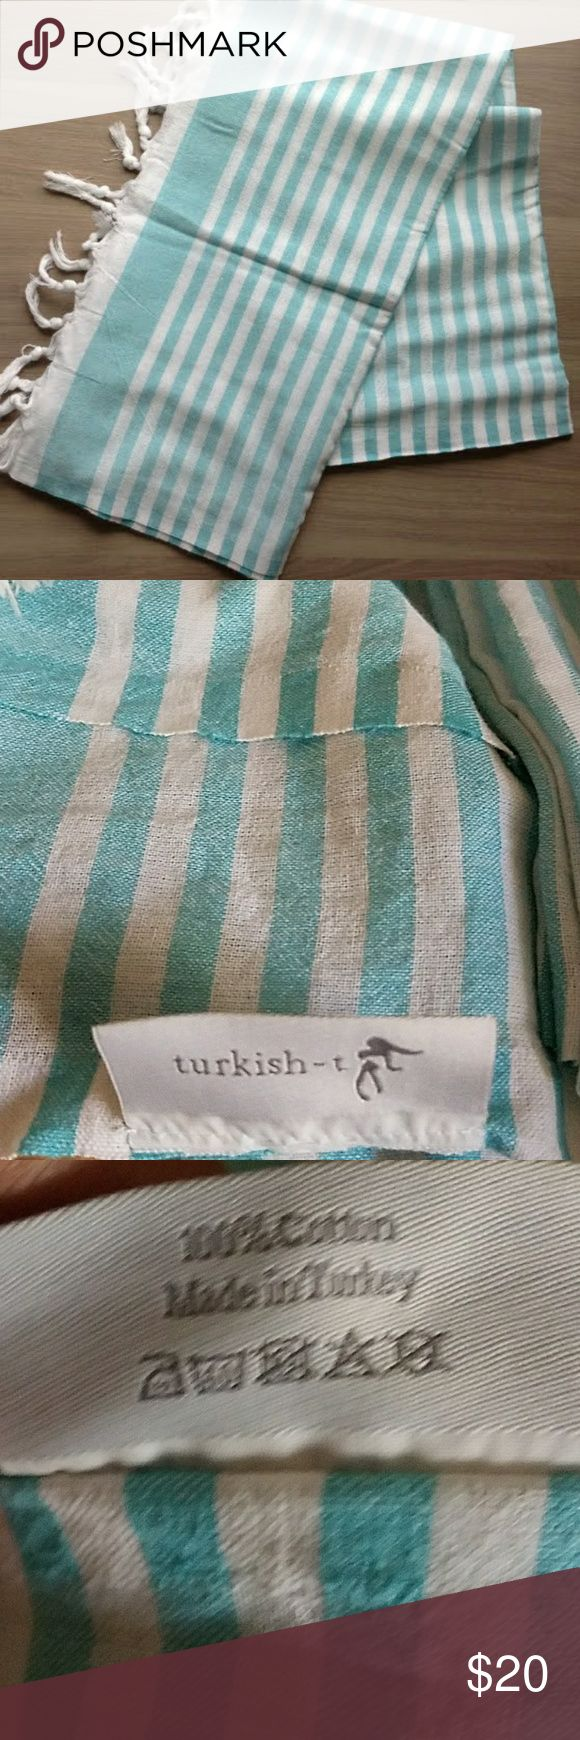 """Last chance! Turkish T Turquoise Beach Towel Gently used! Turkish T Beach Towel  This Turkish-T towel acts as a lightweight beach towel by day and as a glam wrap by night. It's loomed from the world's finest cotton, so trade in your overused beach towel for this chic alternative.   -100% cotton -approximately 68"""" x 38"""" Turkish T Other"""